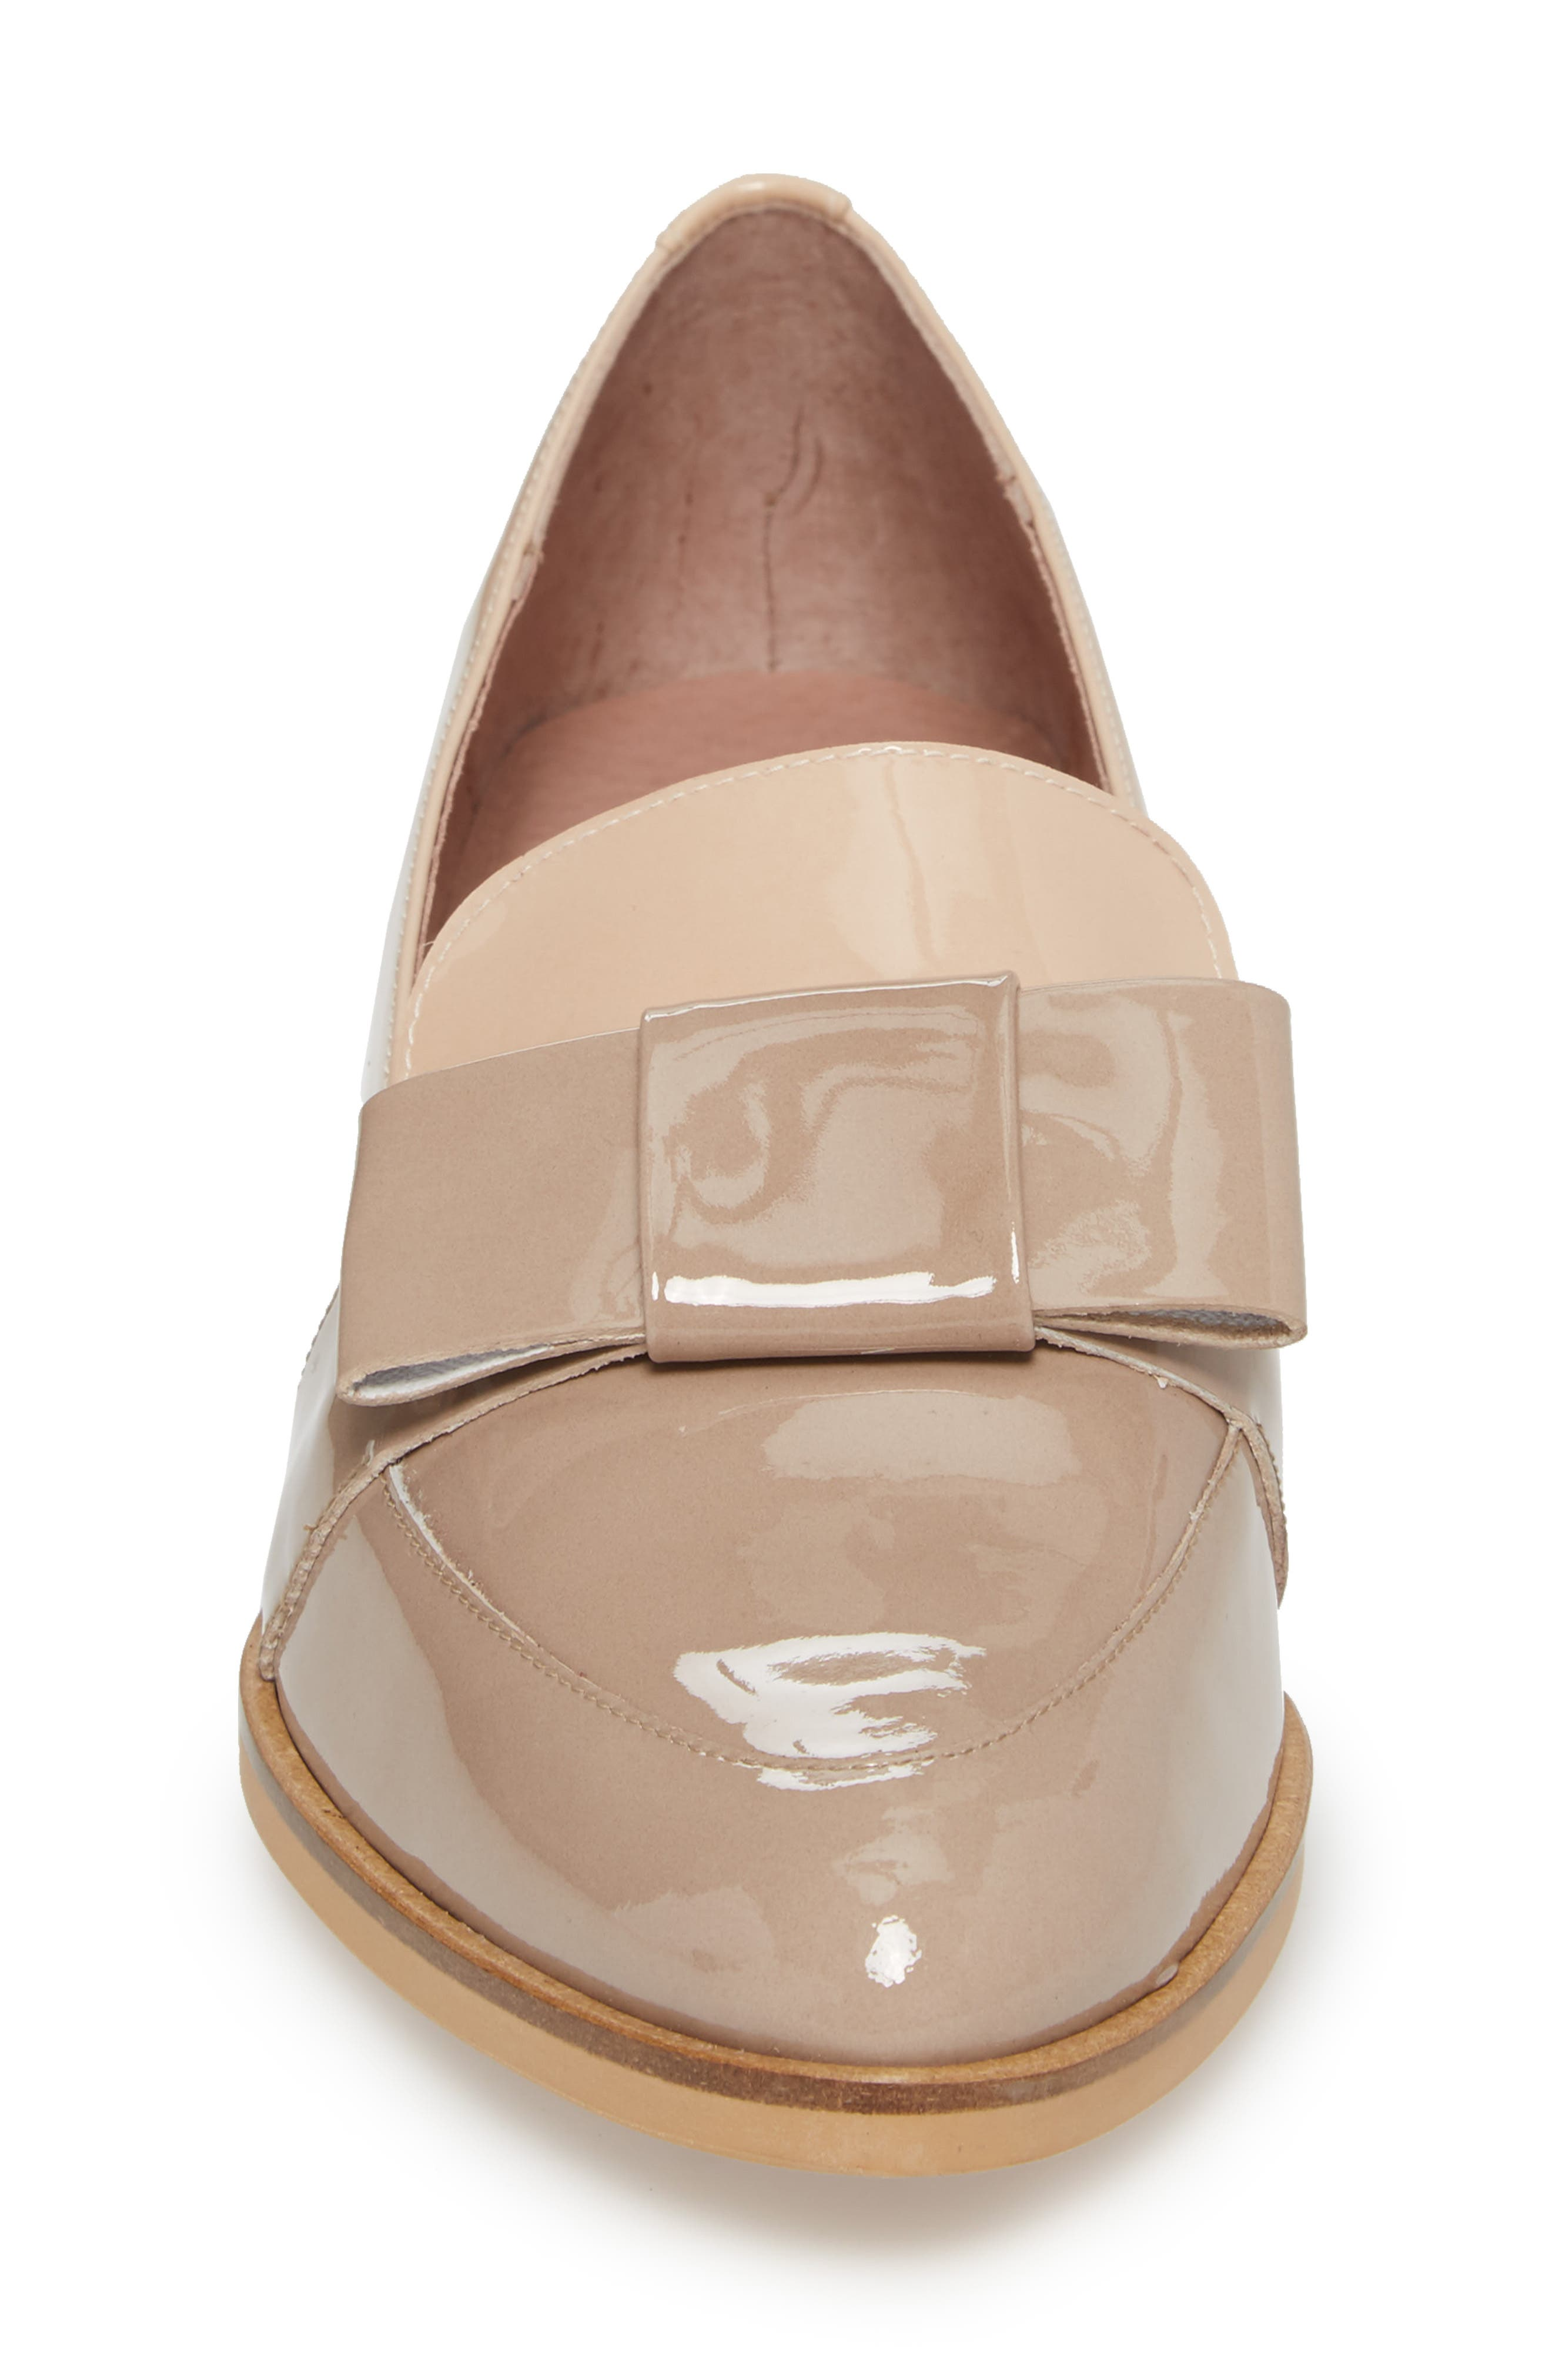 Block Heel Loafer Pump,                             Alternate thumbnail 4, color,                             TAUPE/ PALO PATENT LEATHER